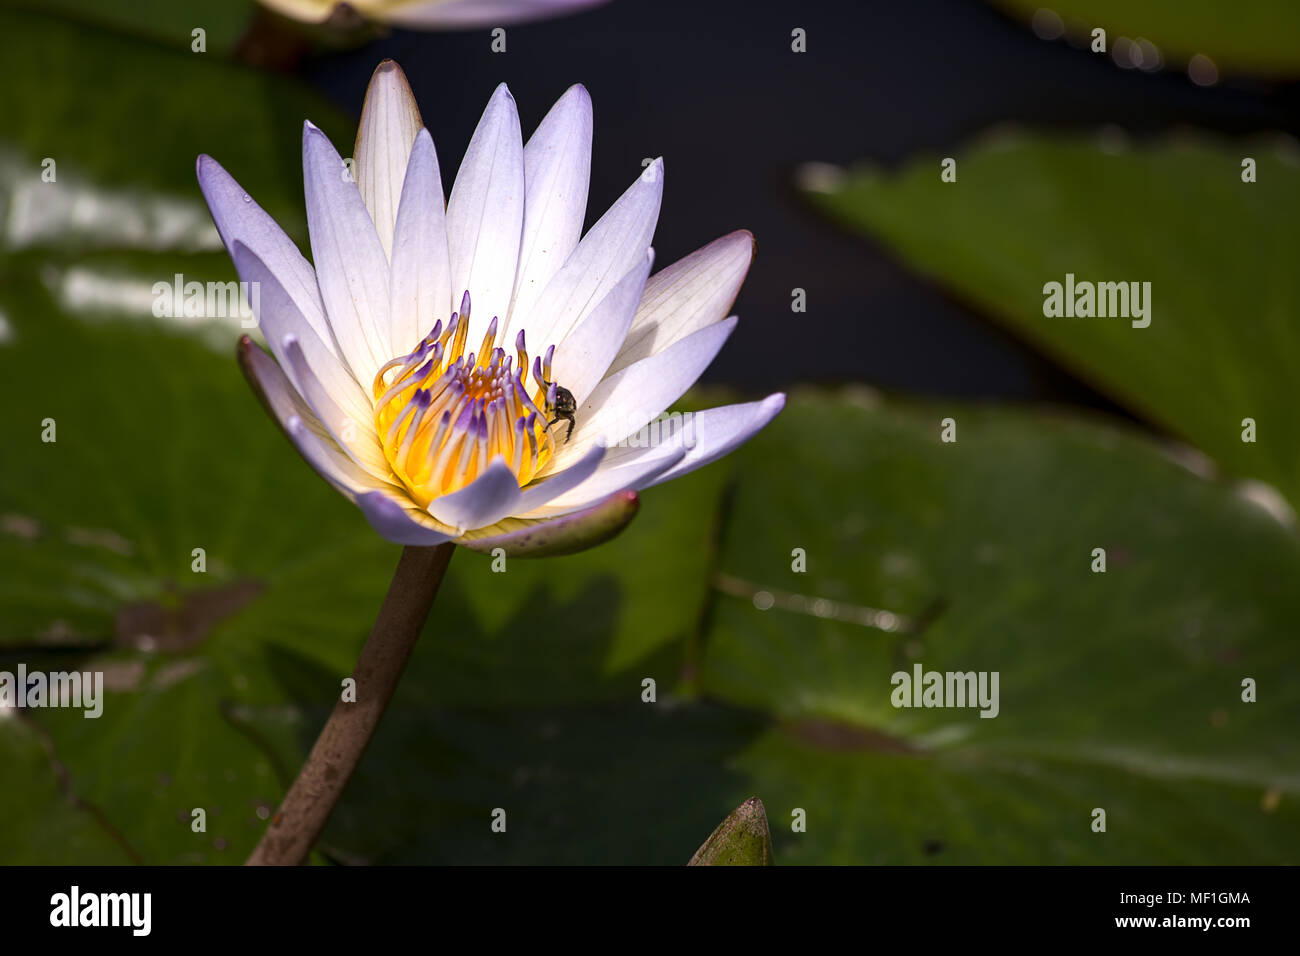 A Bug Search For Food Inside A Lotus Flower Stock Photo 181358586